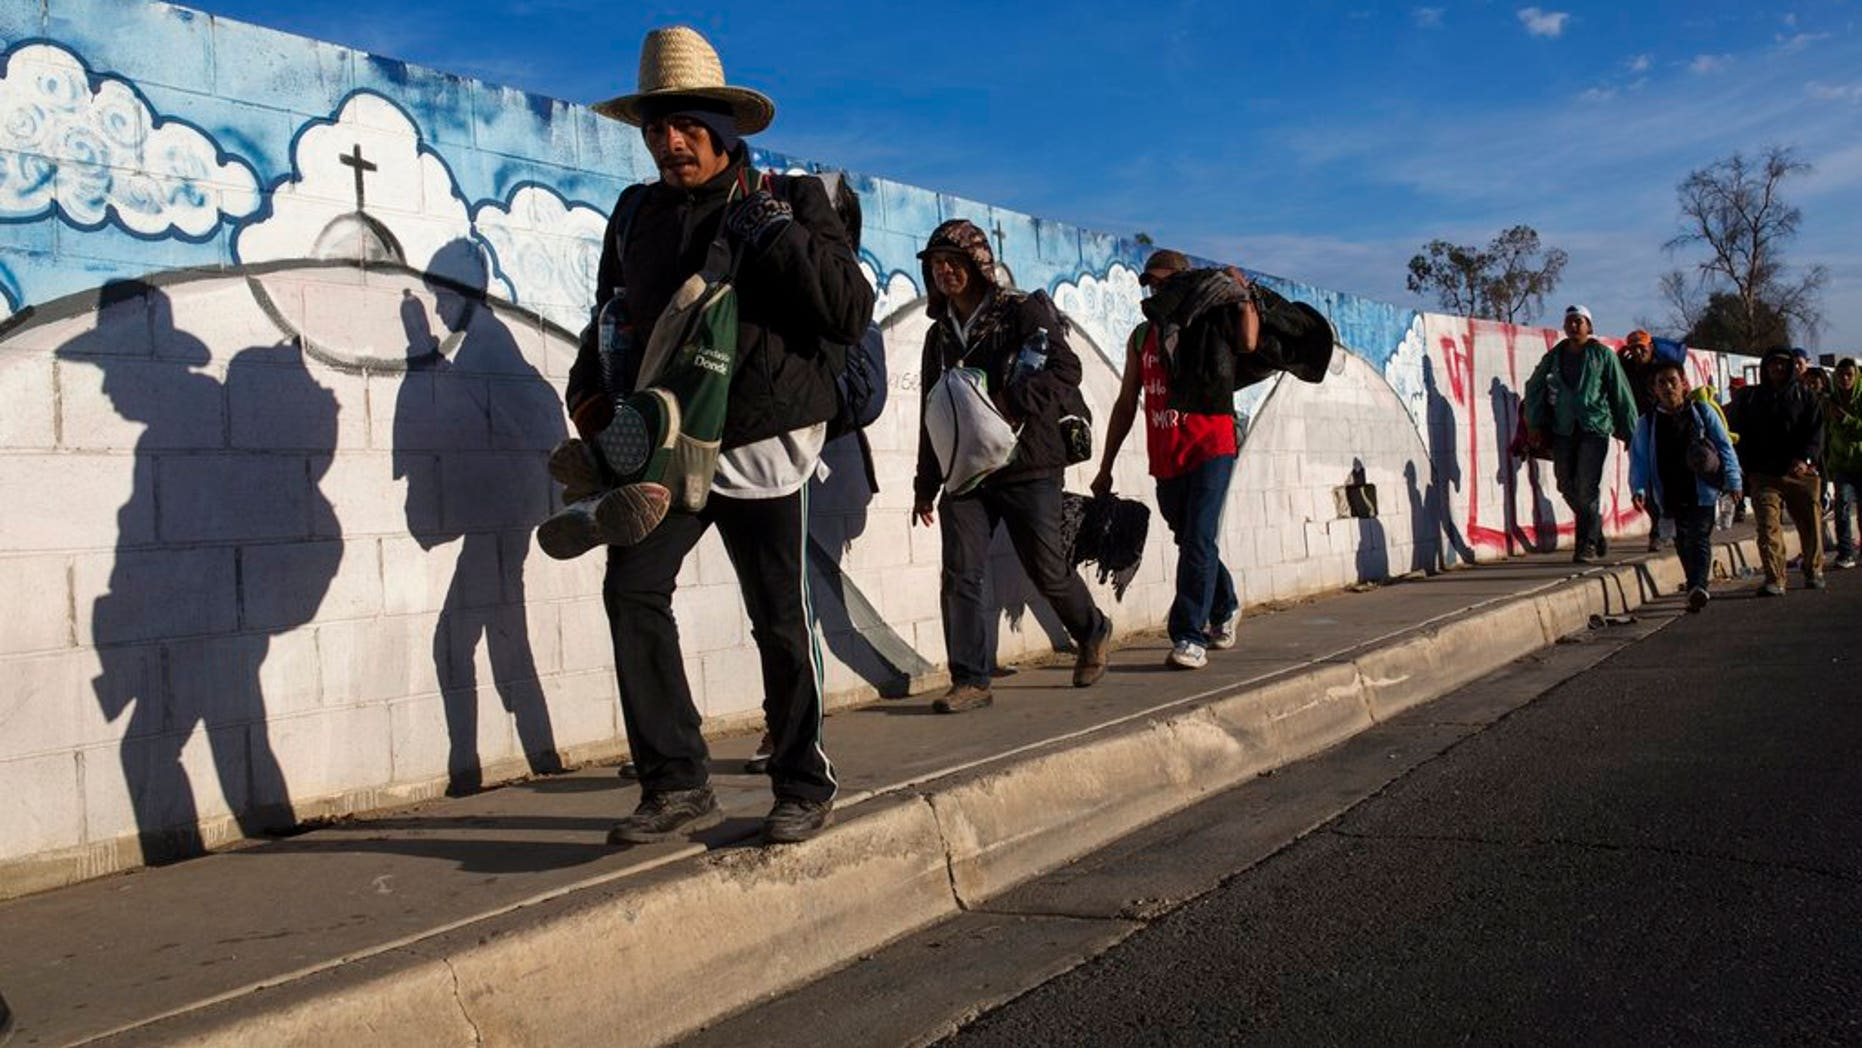 Migrants, who are part of a Central American migrant caravan, leave Mexicali for Tijuana, Mexico.